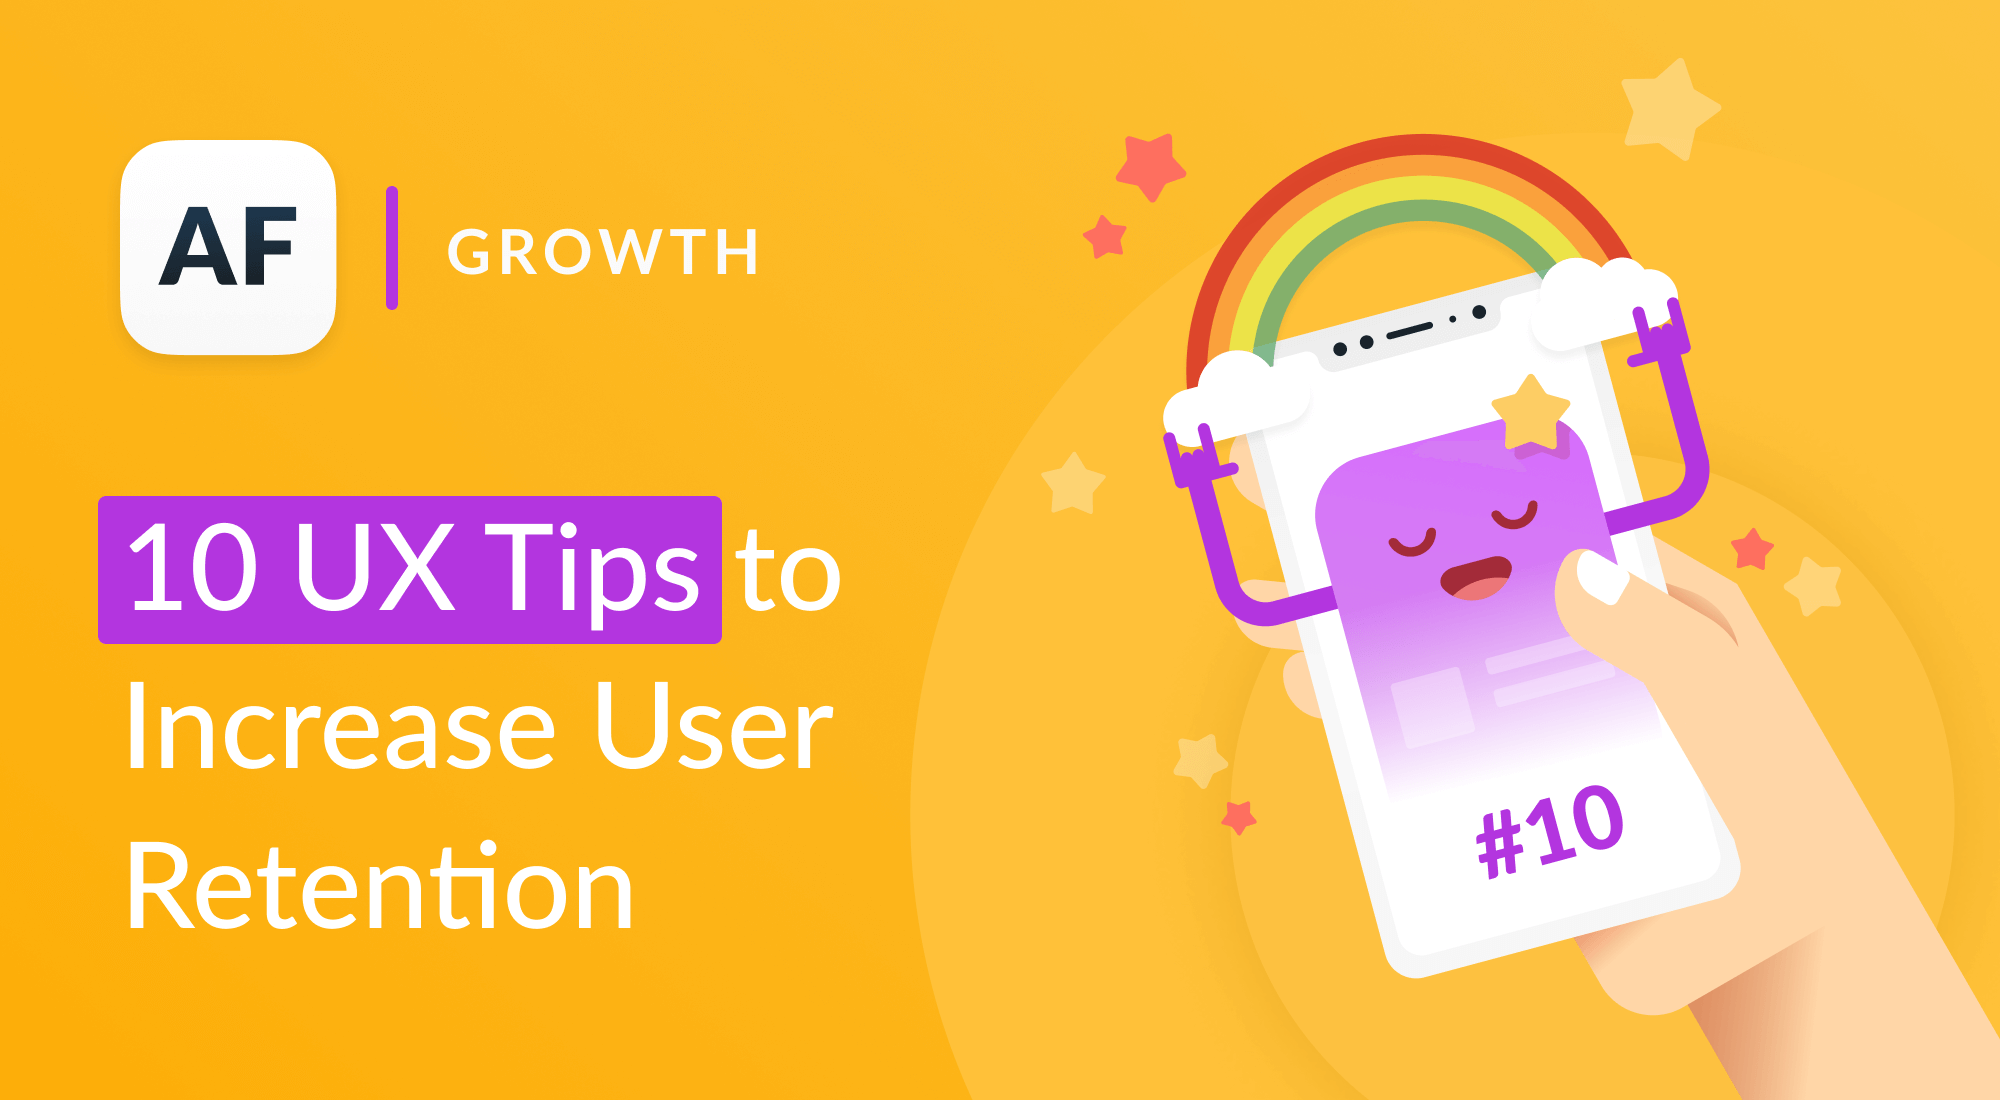 How to Increase User Retention: 10 UX Tips